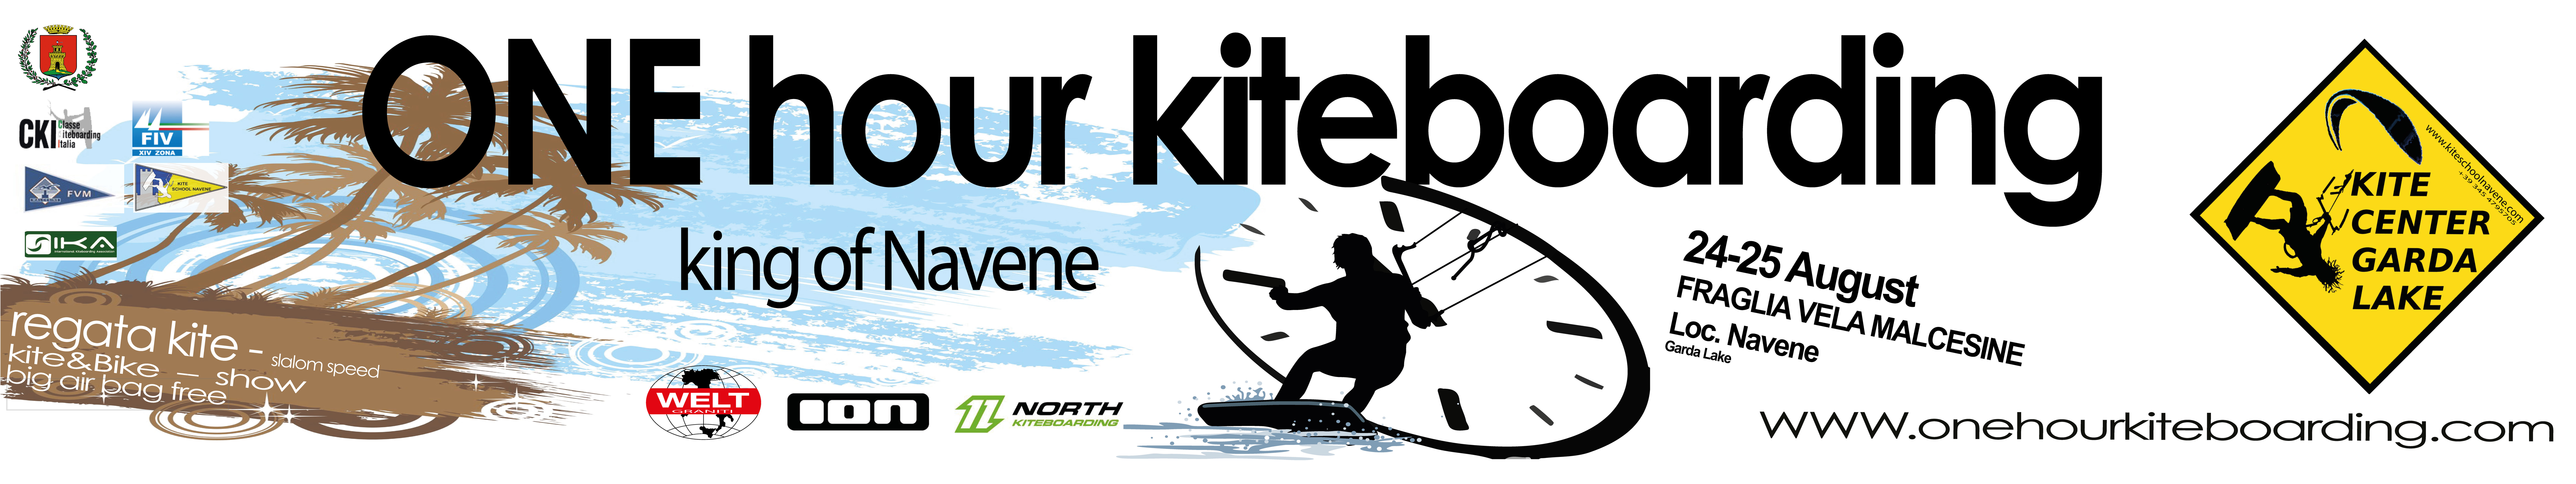 striscione-one-hour-kiteboarding